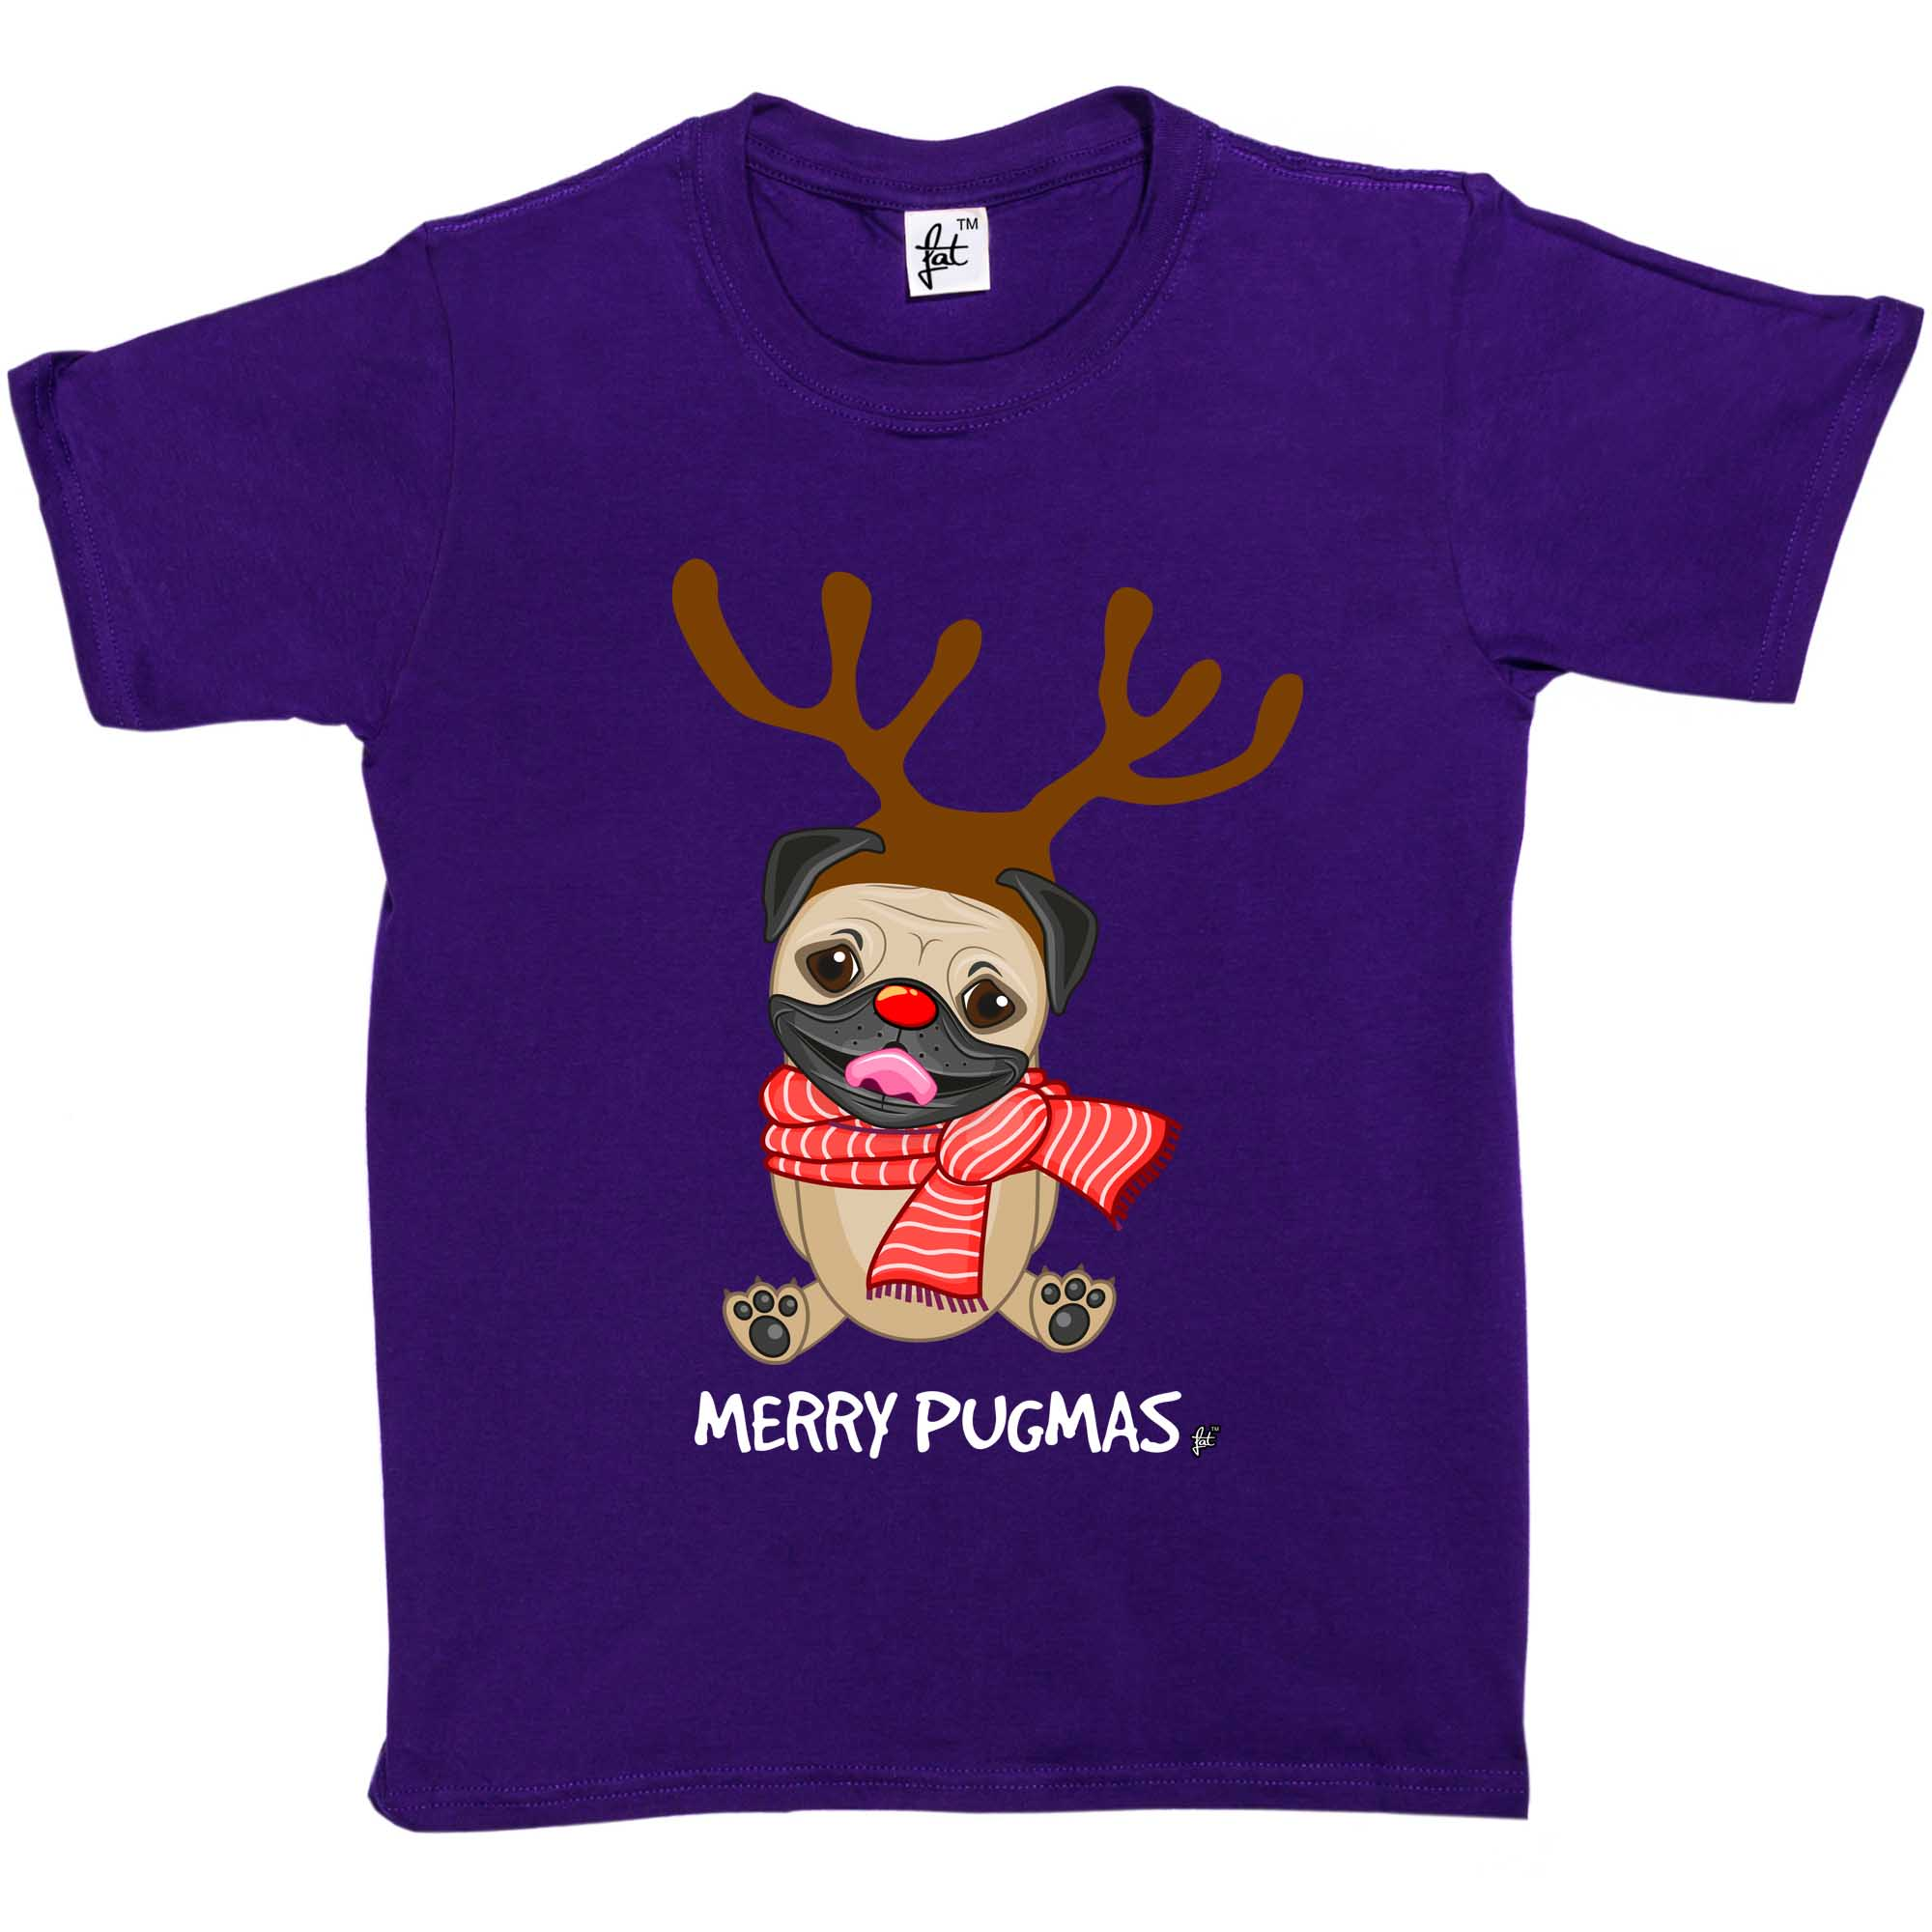 Girls T-Shirt Merry Pugmas Christmas Pug Wears Reindeer Antlers Kids Boys